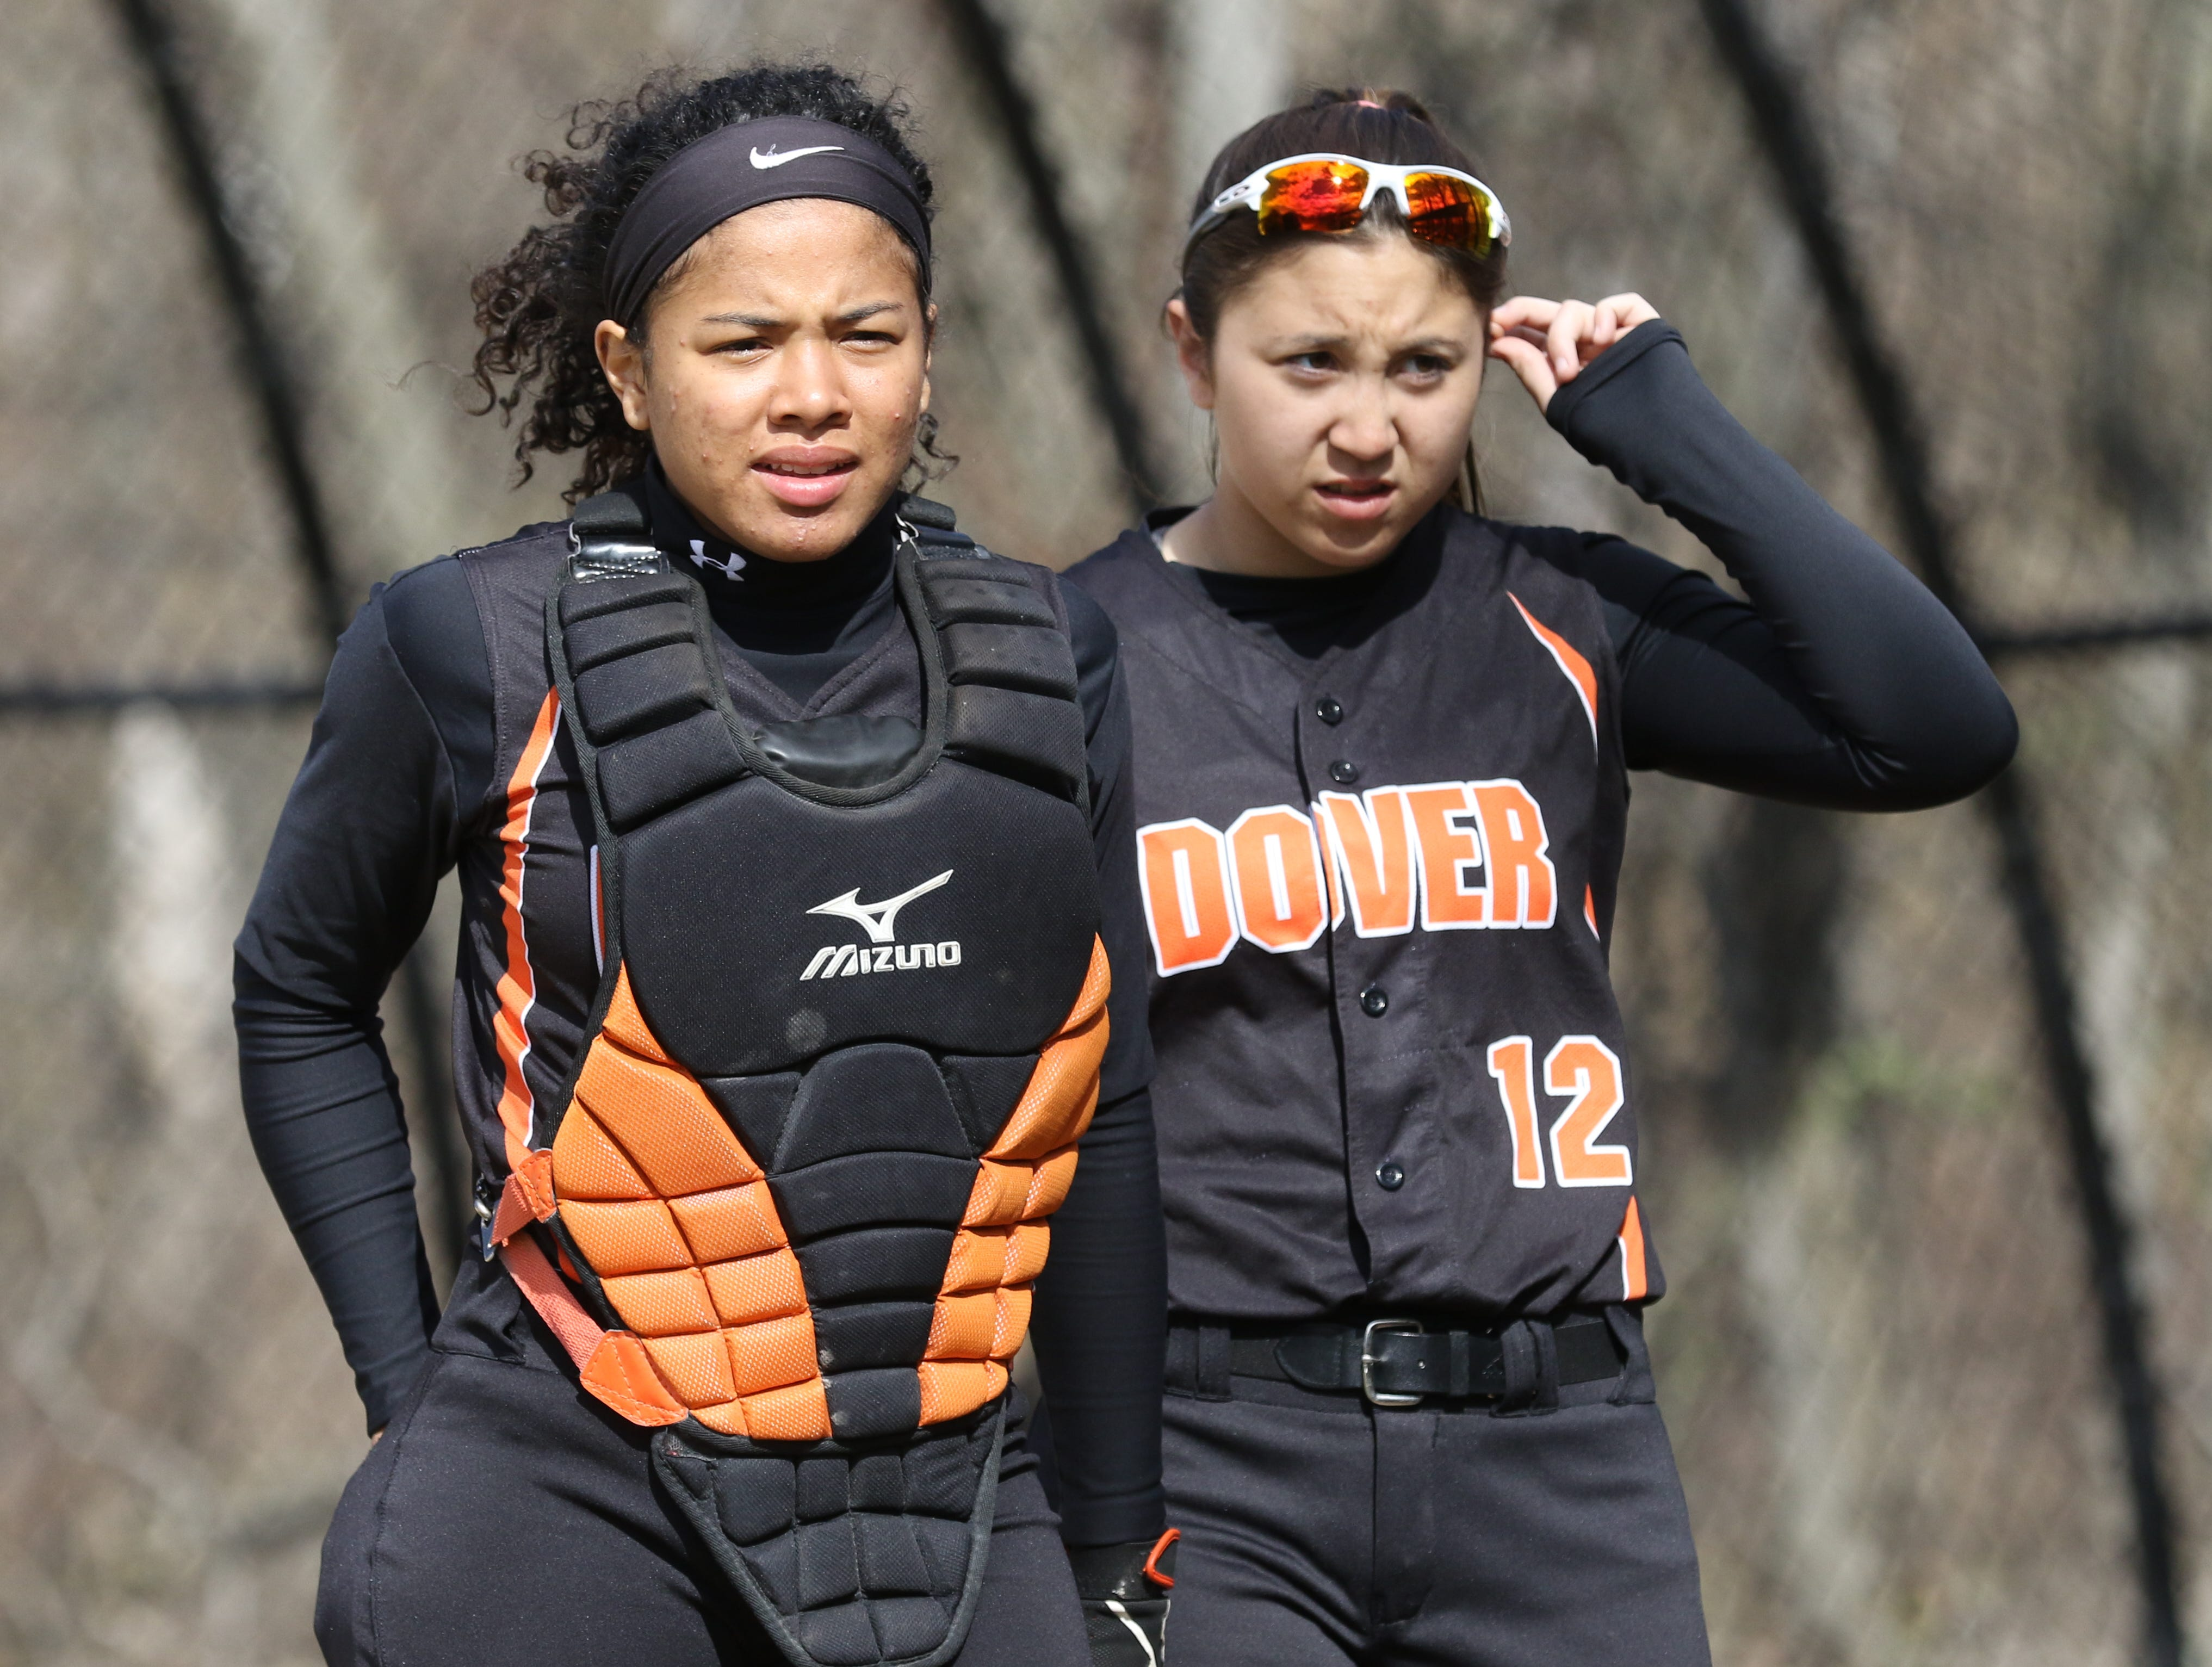 Dover catcher Chelsea Estacio and shortstop Brianna Koo come to the dugout after warmups.